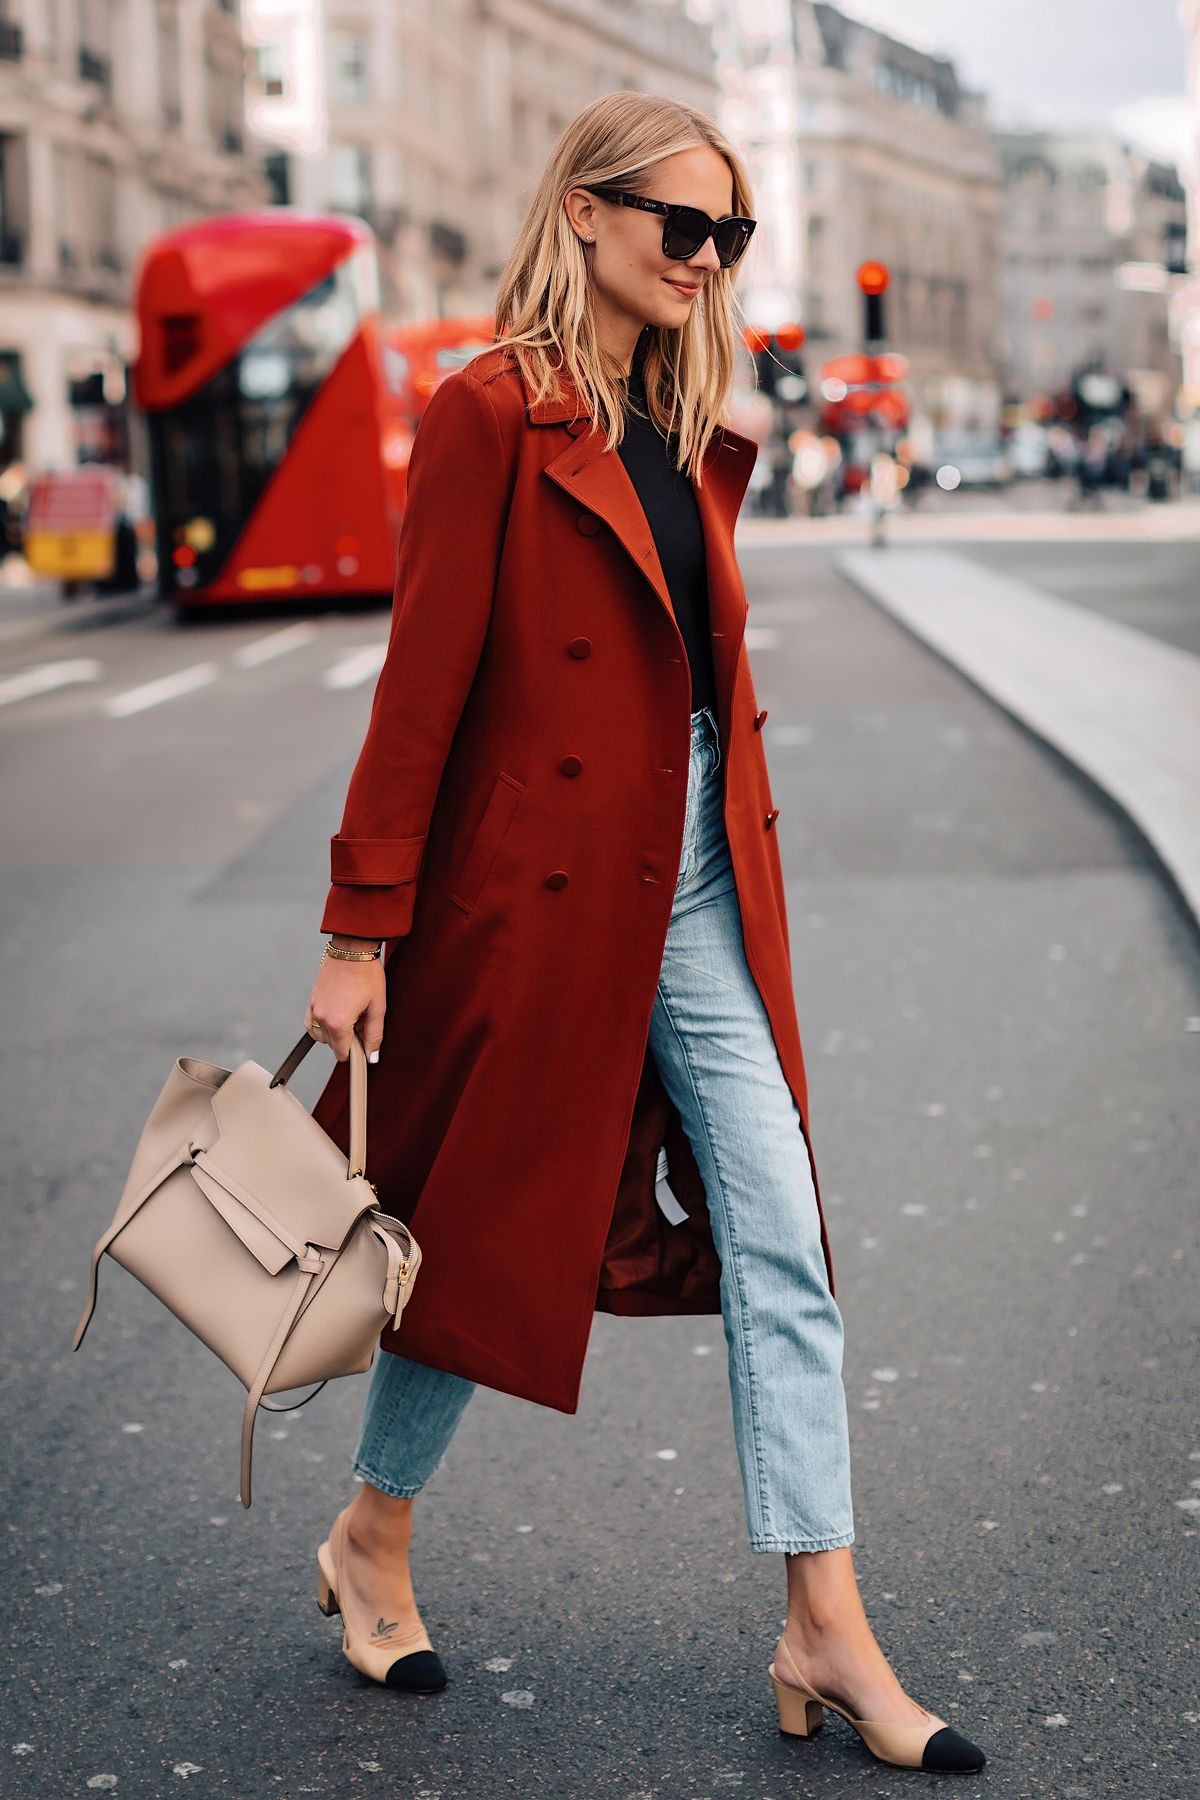 d60ccdfb892b8b Blonde Woman Wearing Red Trench Coat Black Top Relaxed Jeans Outfit Chanel  Slingbacks Celine Mini Belt Bag Fashion Jackson San Diego Fashion Blogger  London ...